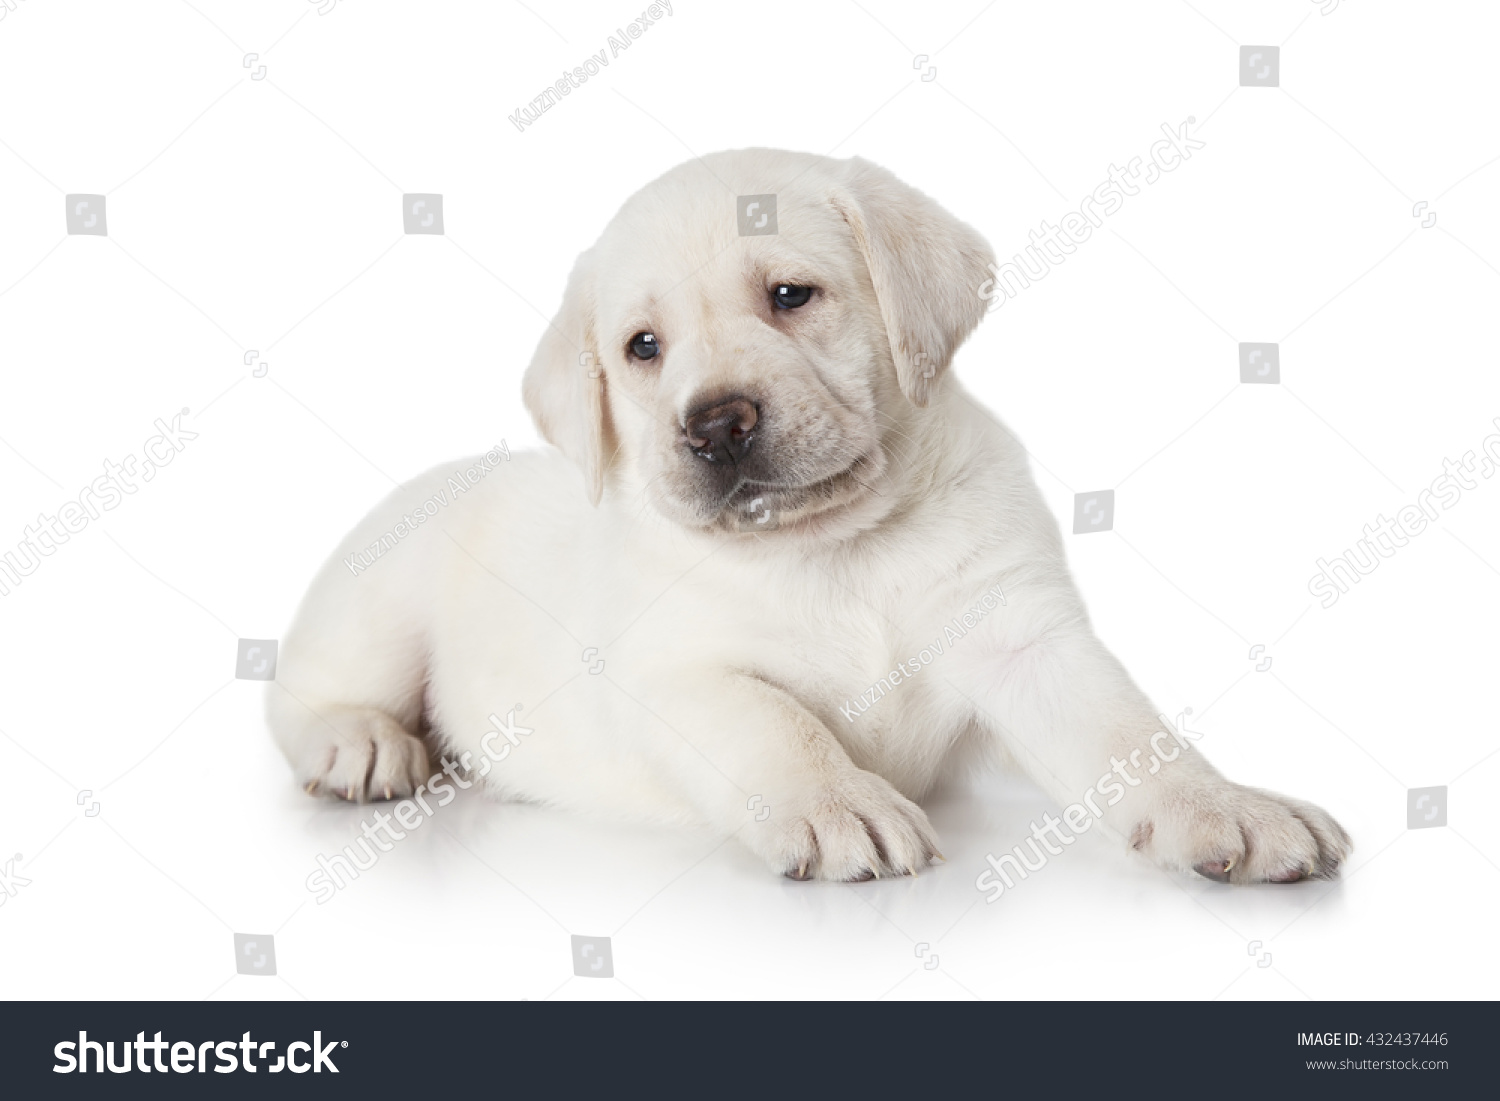 Six Weeks Old Purebred Labrador Puppy Dog Isolated On White